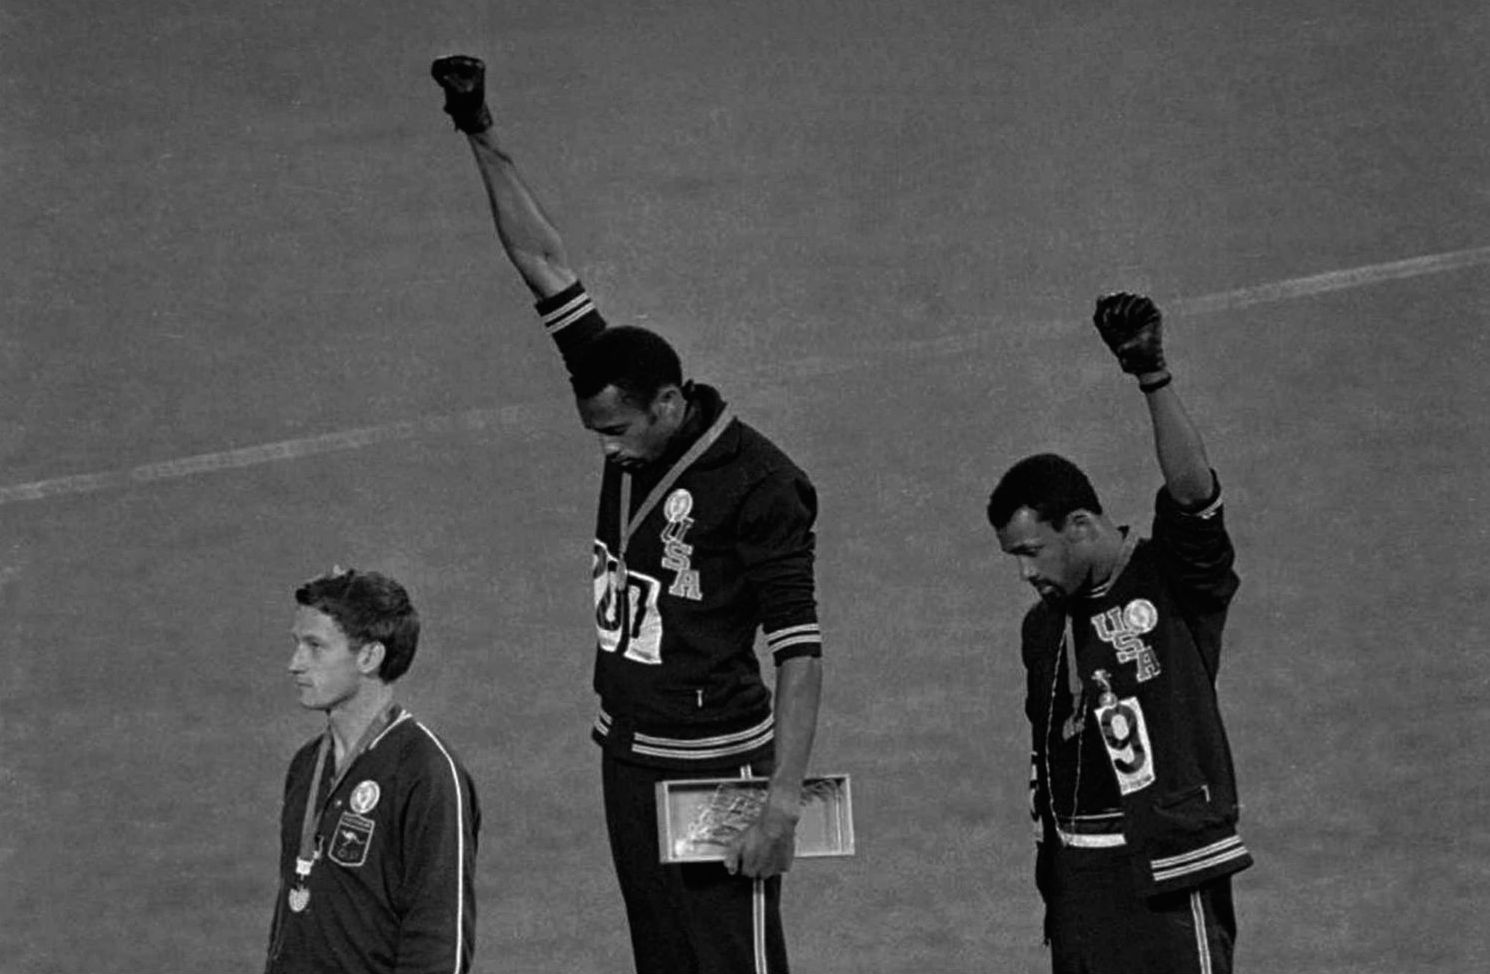 48 Years Later, Olympian John Carlos Reflects on His Iconic Black Power Salute